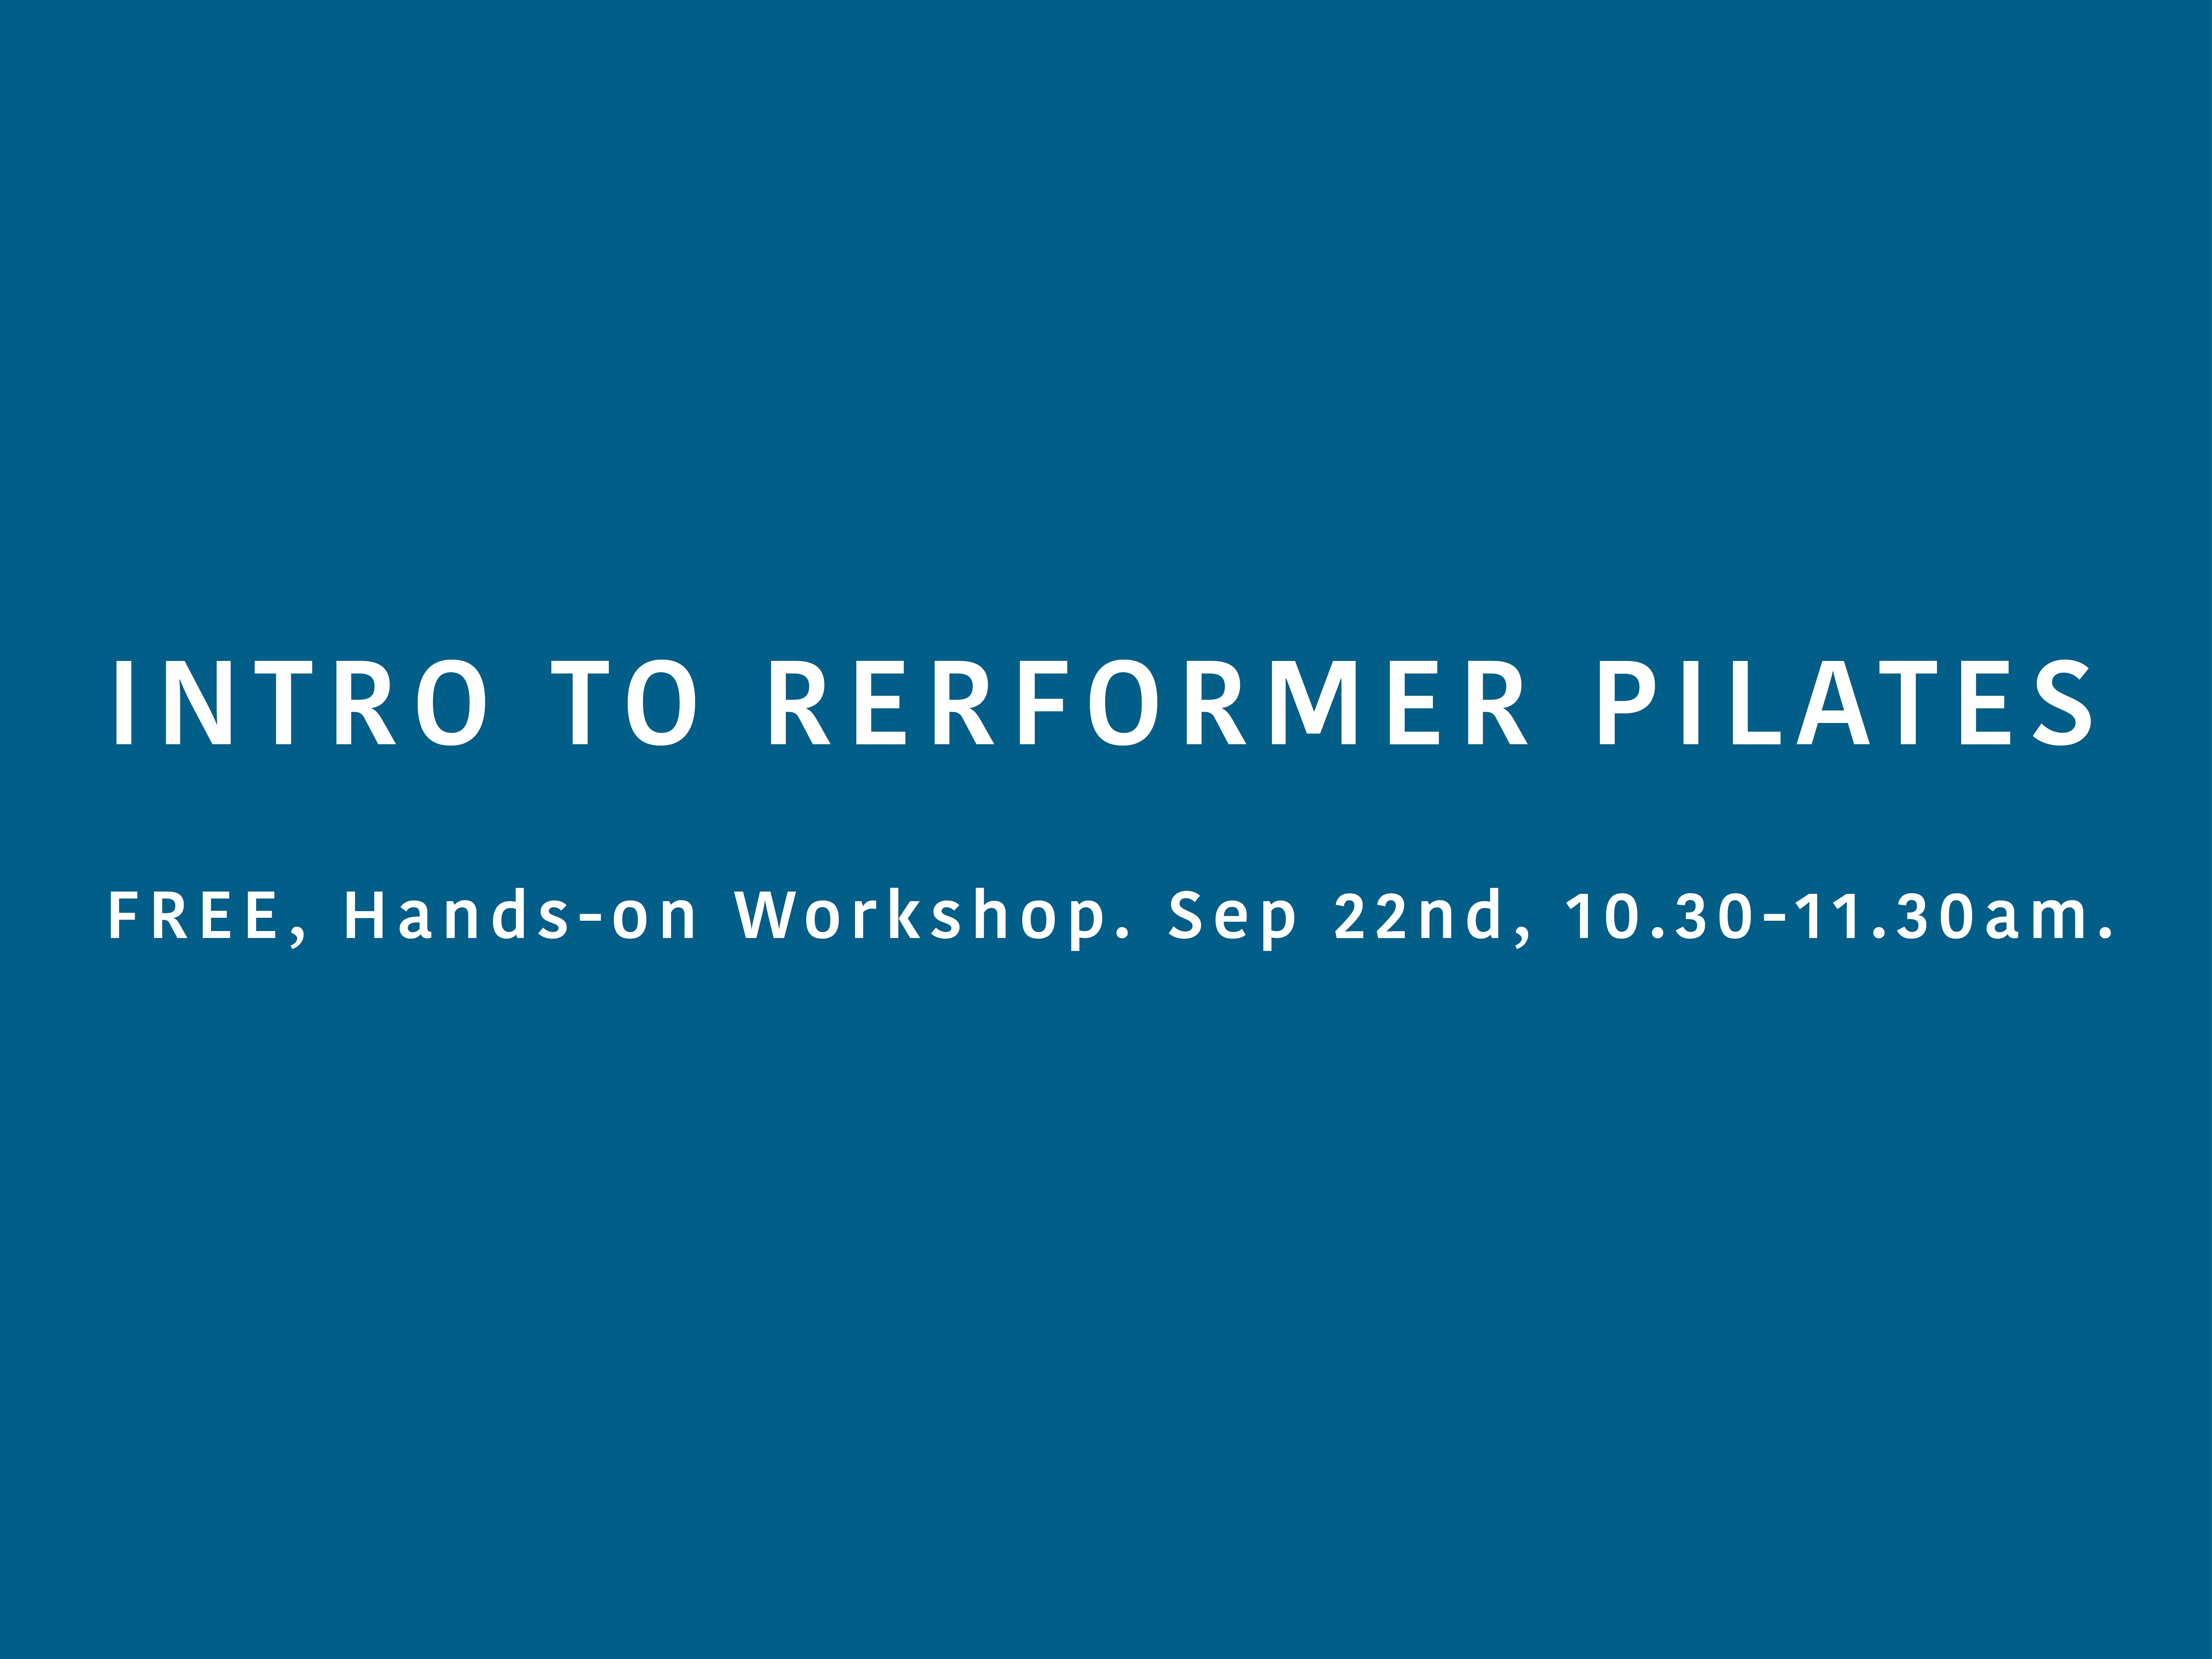 Intro to Reformer Pilates Workshop